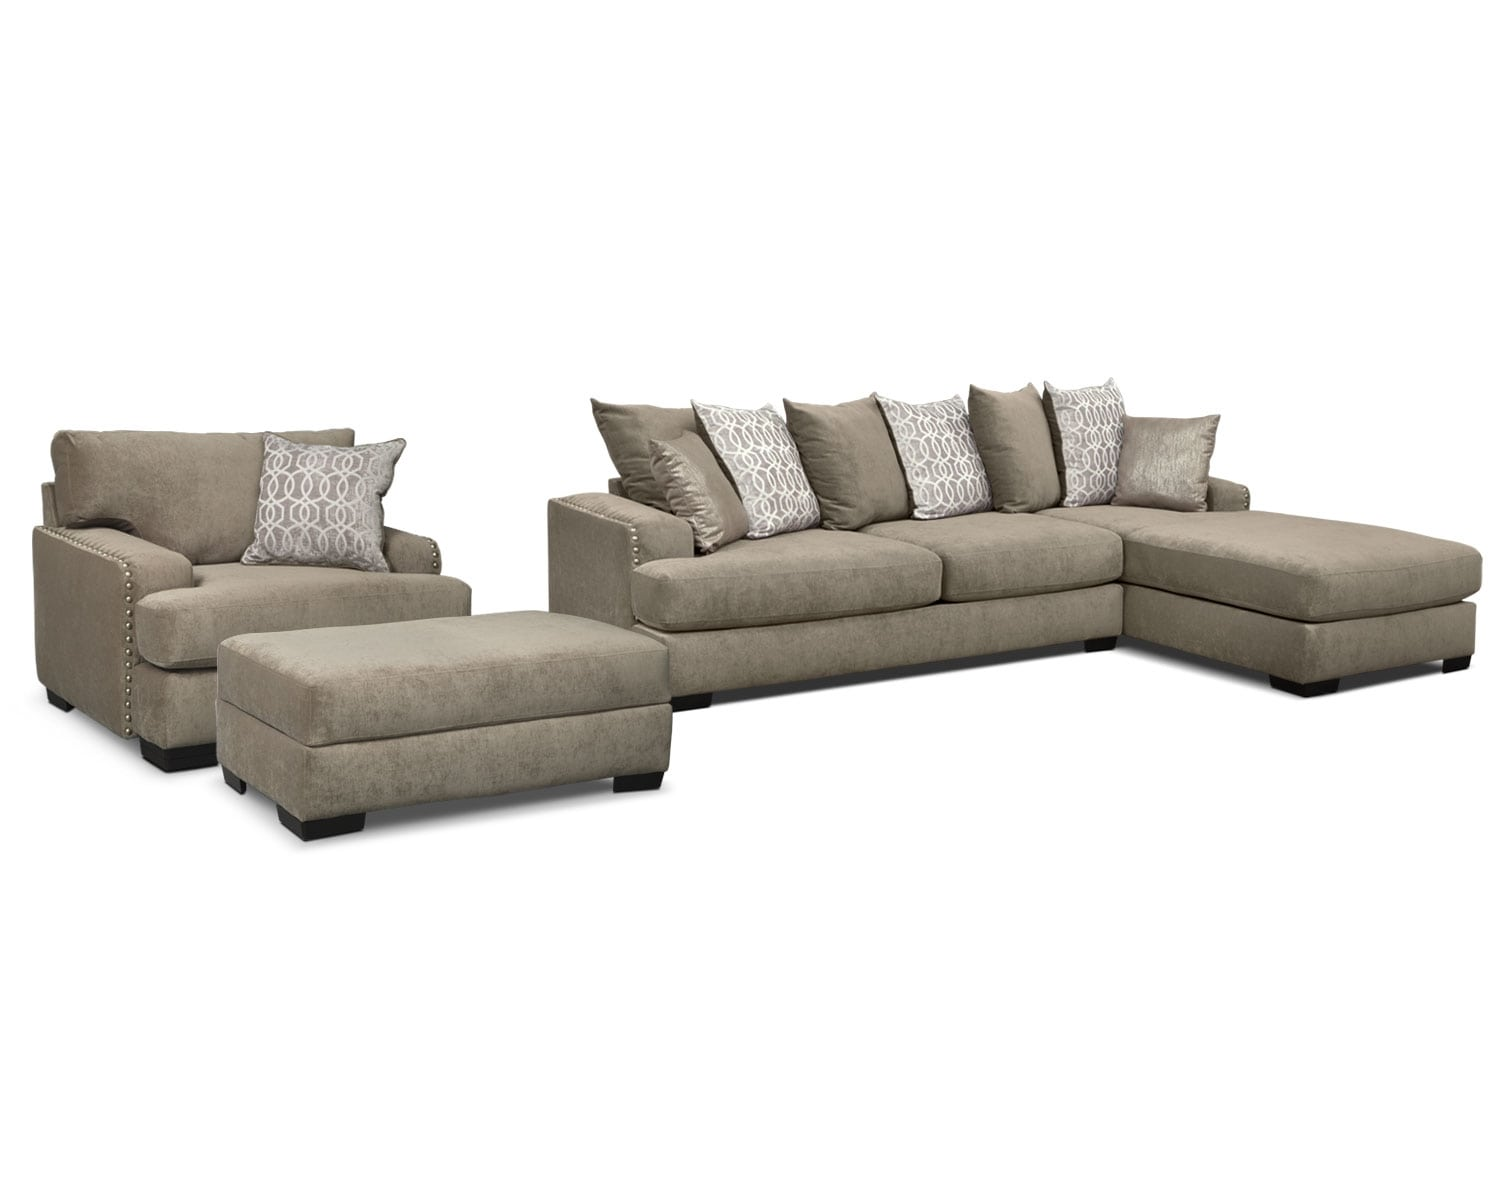 [The Tempo Sectional Living Room Collection]